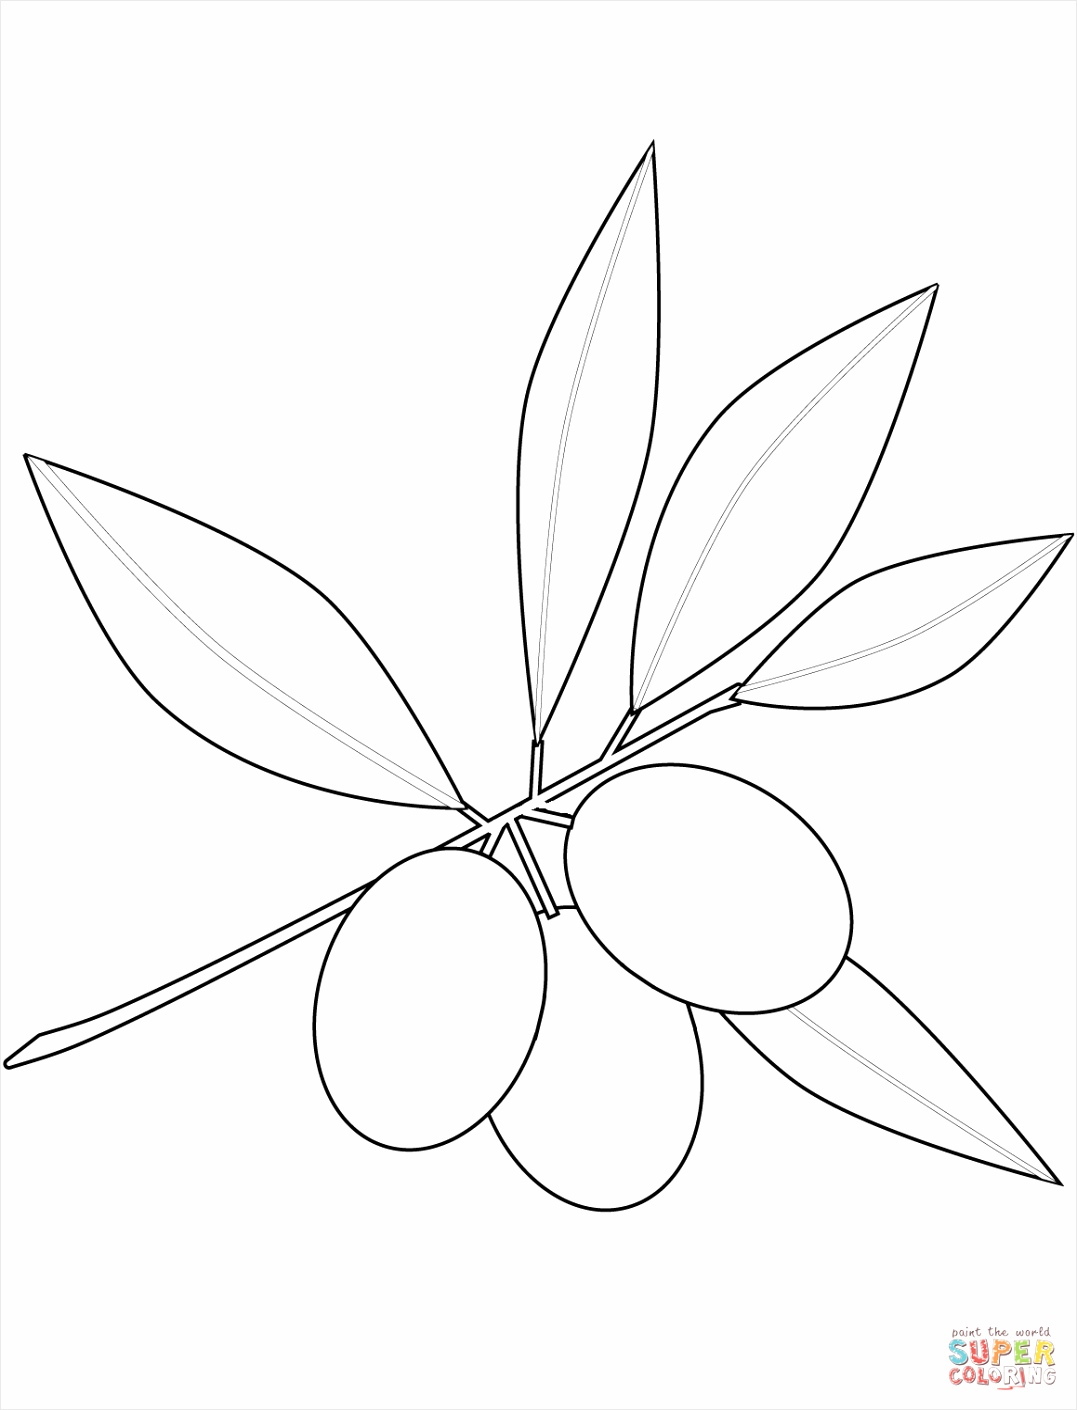 olives coloring page uaaex